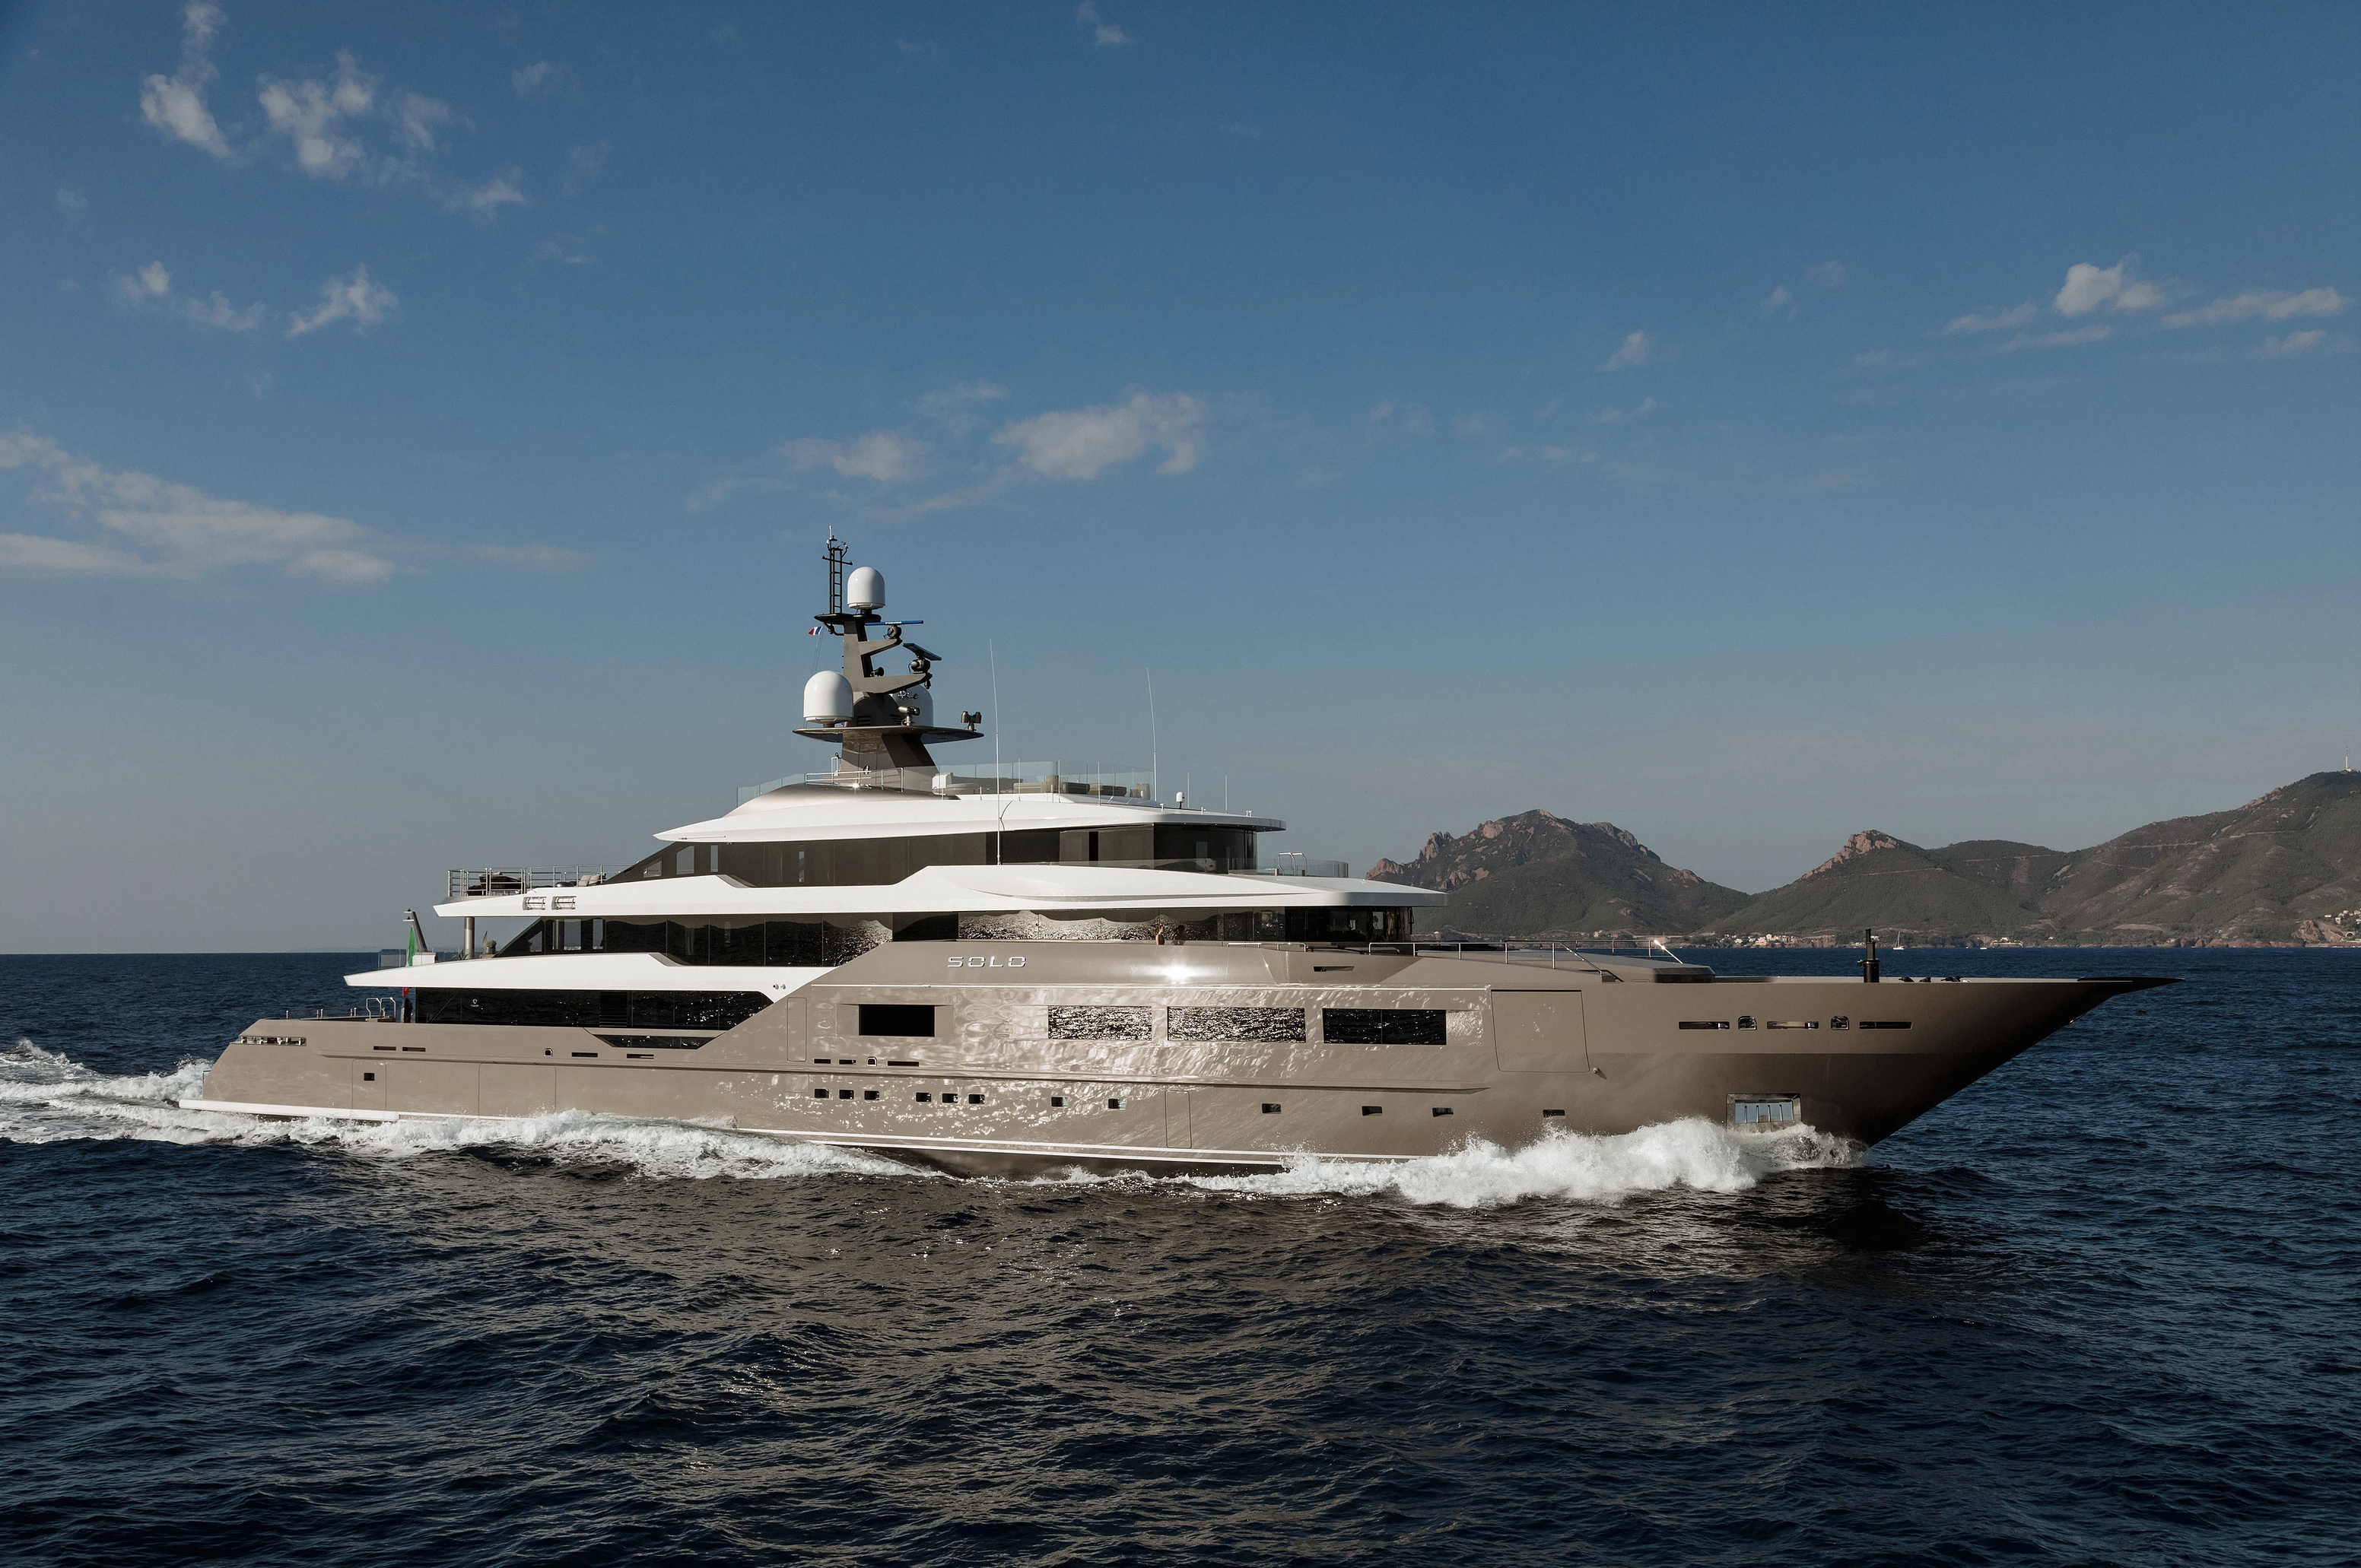 5 Of The Largest Yachts Confirmed For Superyacht Show 2019 Yacht